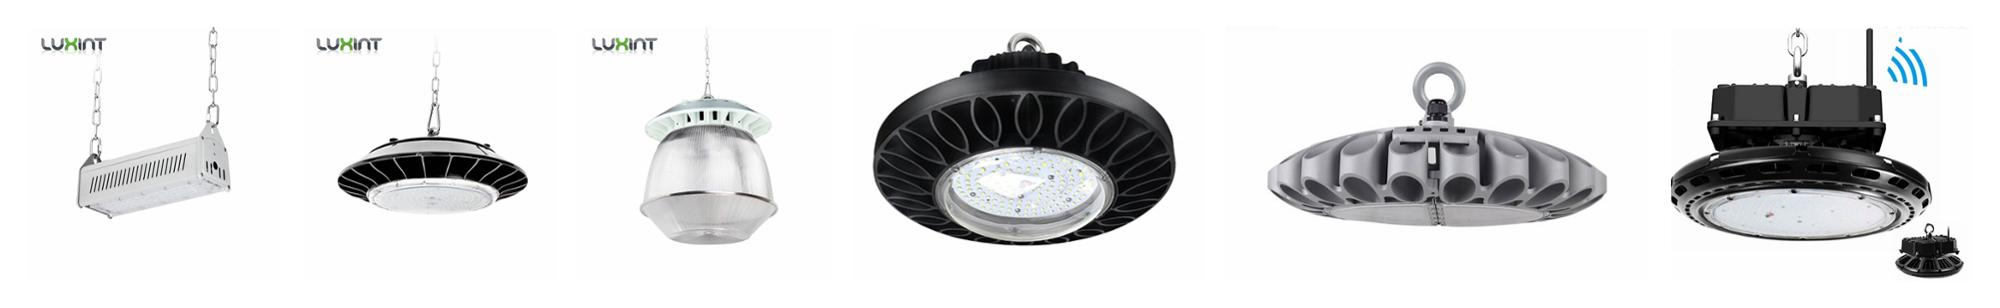 Led Light Supplier 60w 80w 100w 150w 200w 300w 400w 500w High Quality with North American Certificated Led High Bay Light